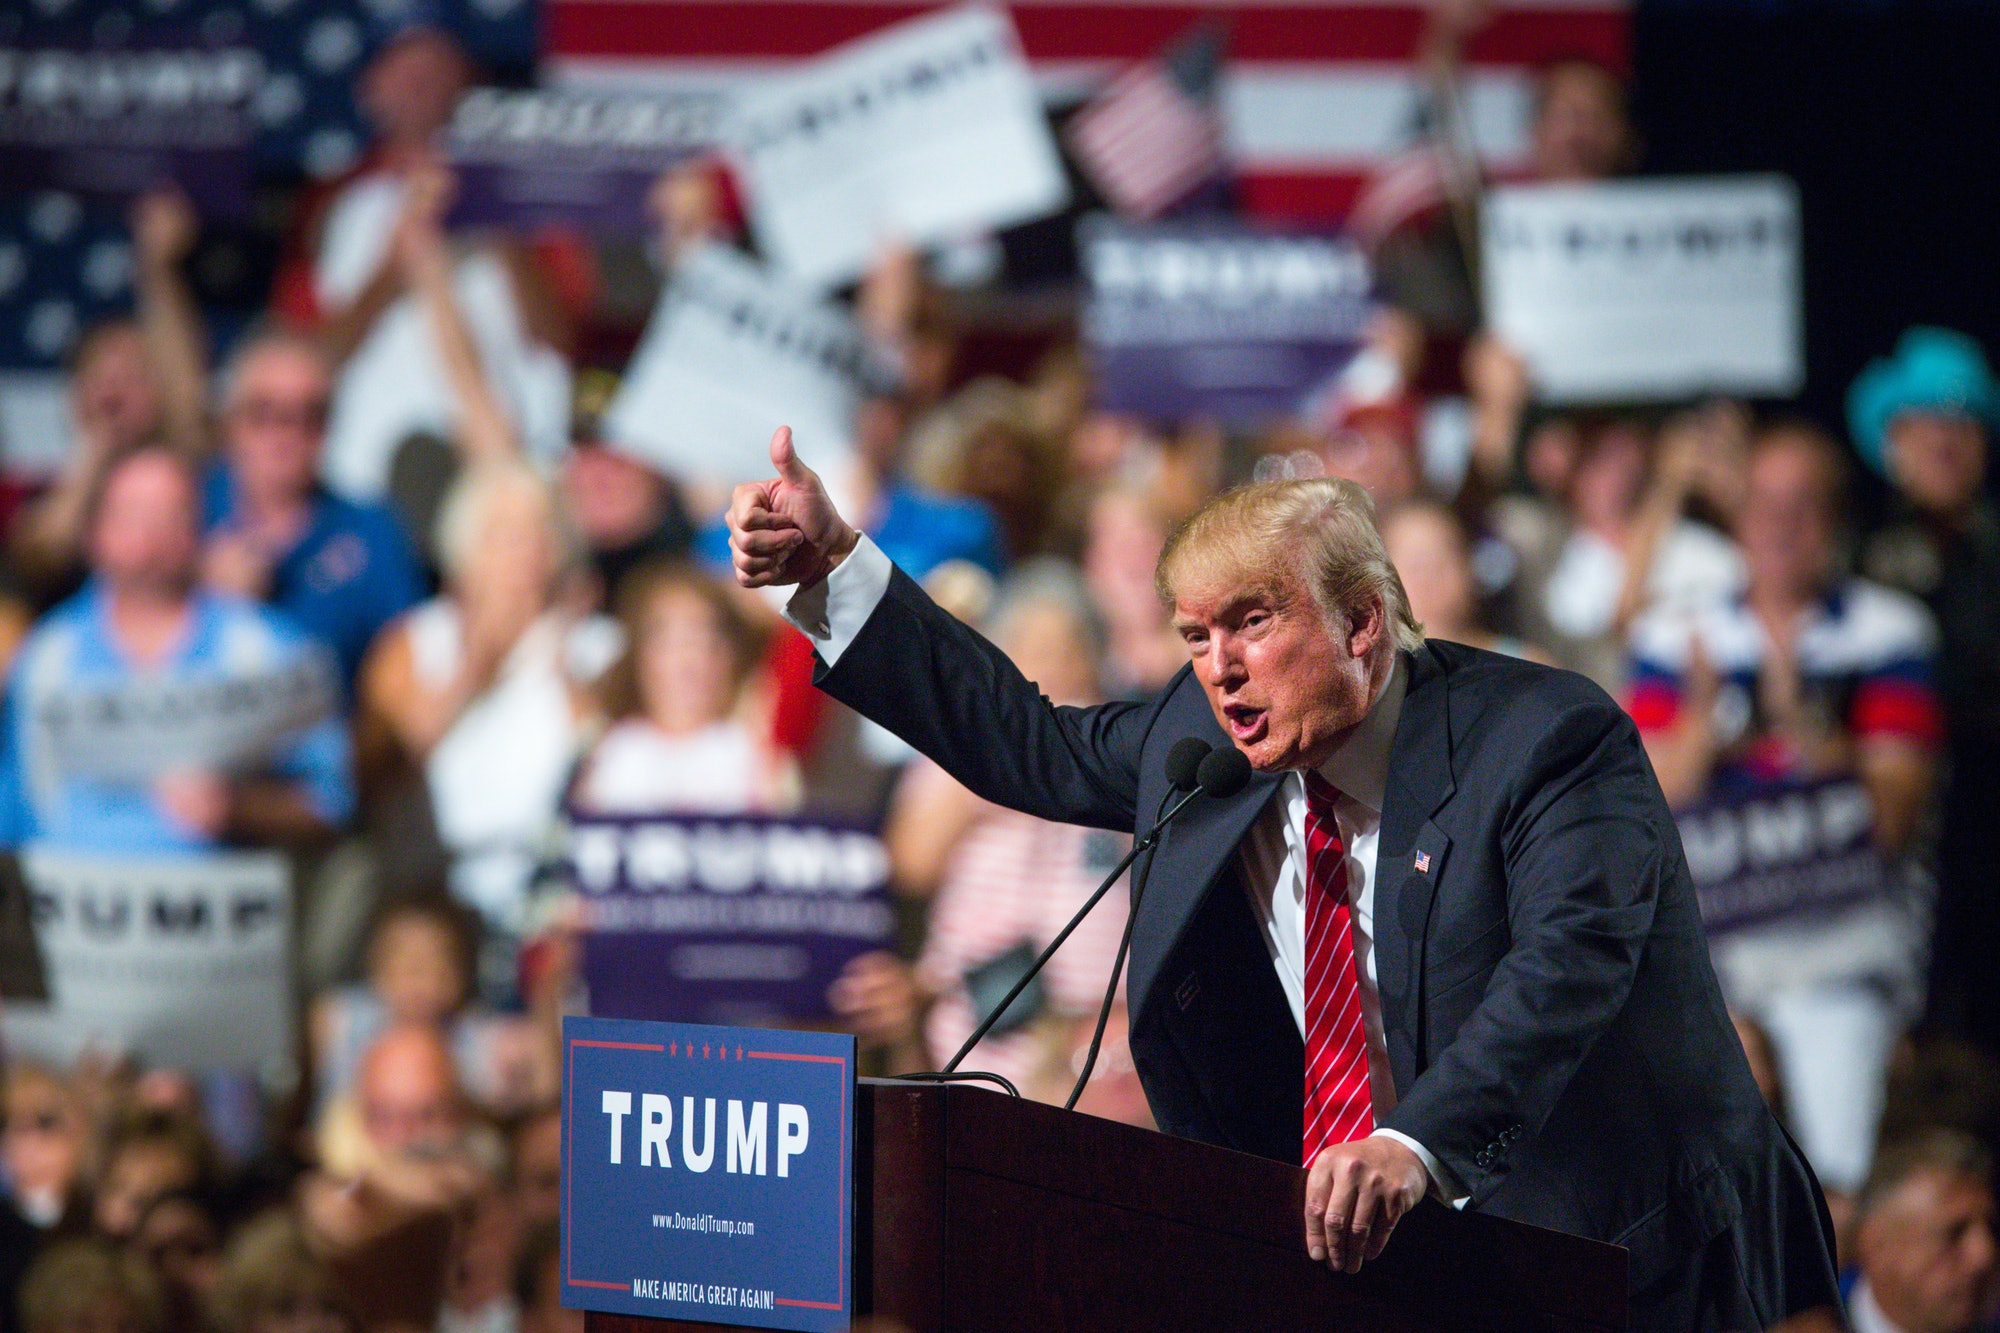 Then-candidate Donald Trump at the Phoenix Convention Center in July2015 in Phoenix, Arizona. He spoke about illegal immigration about 4,000 people.